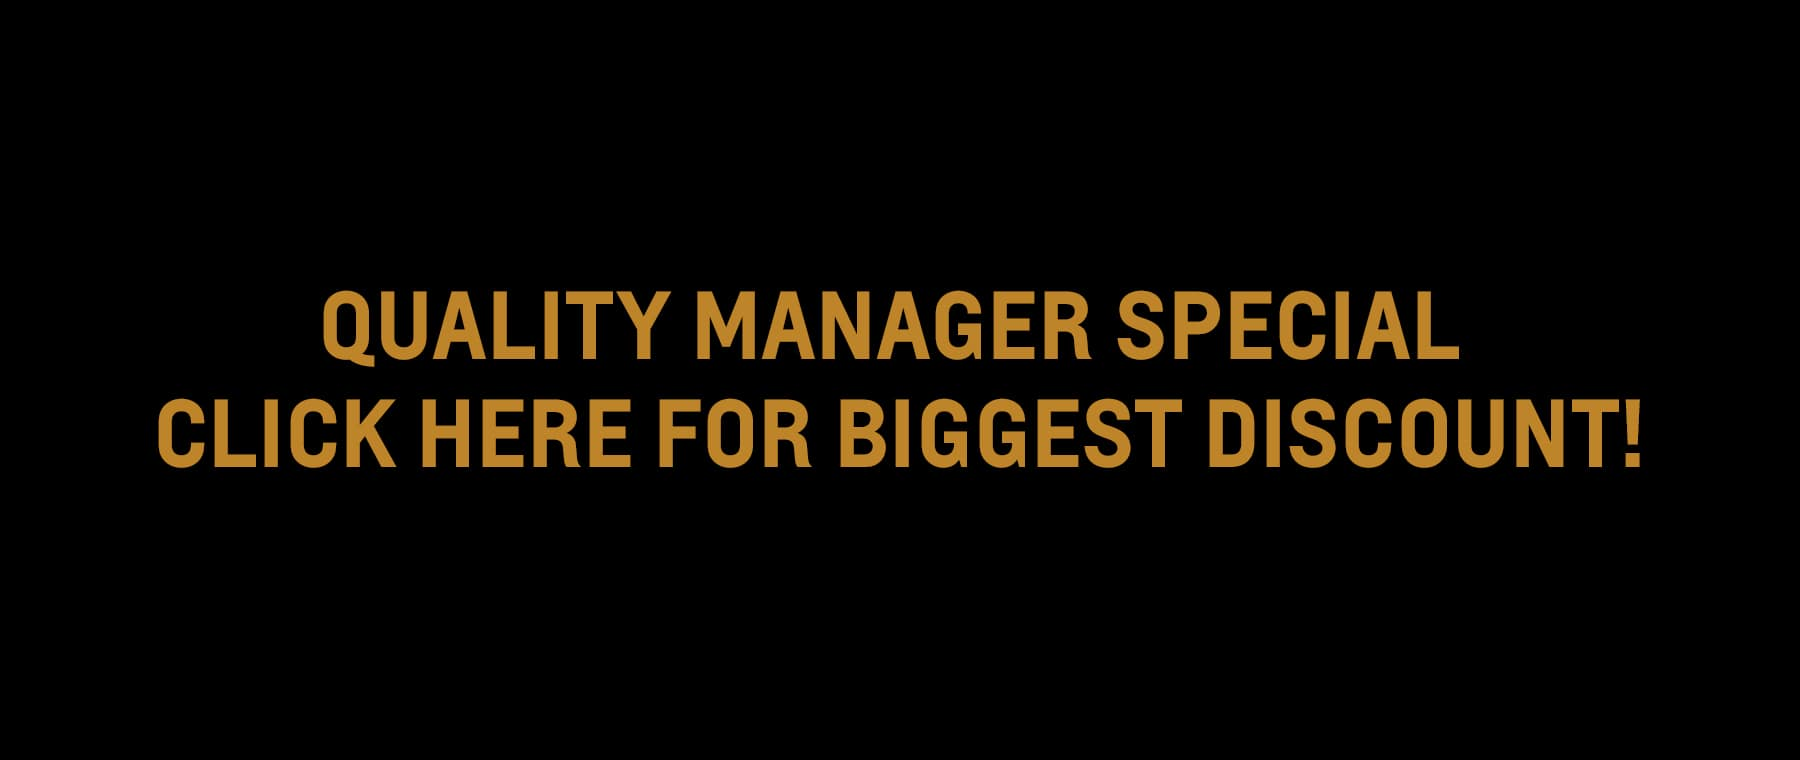 Quality Manager Special Click Here for Biggest Discount!